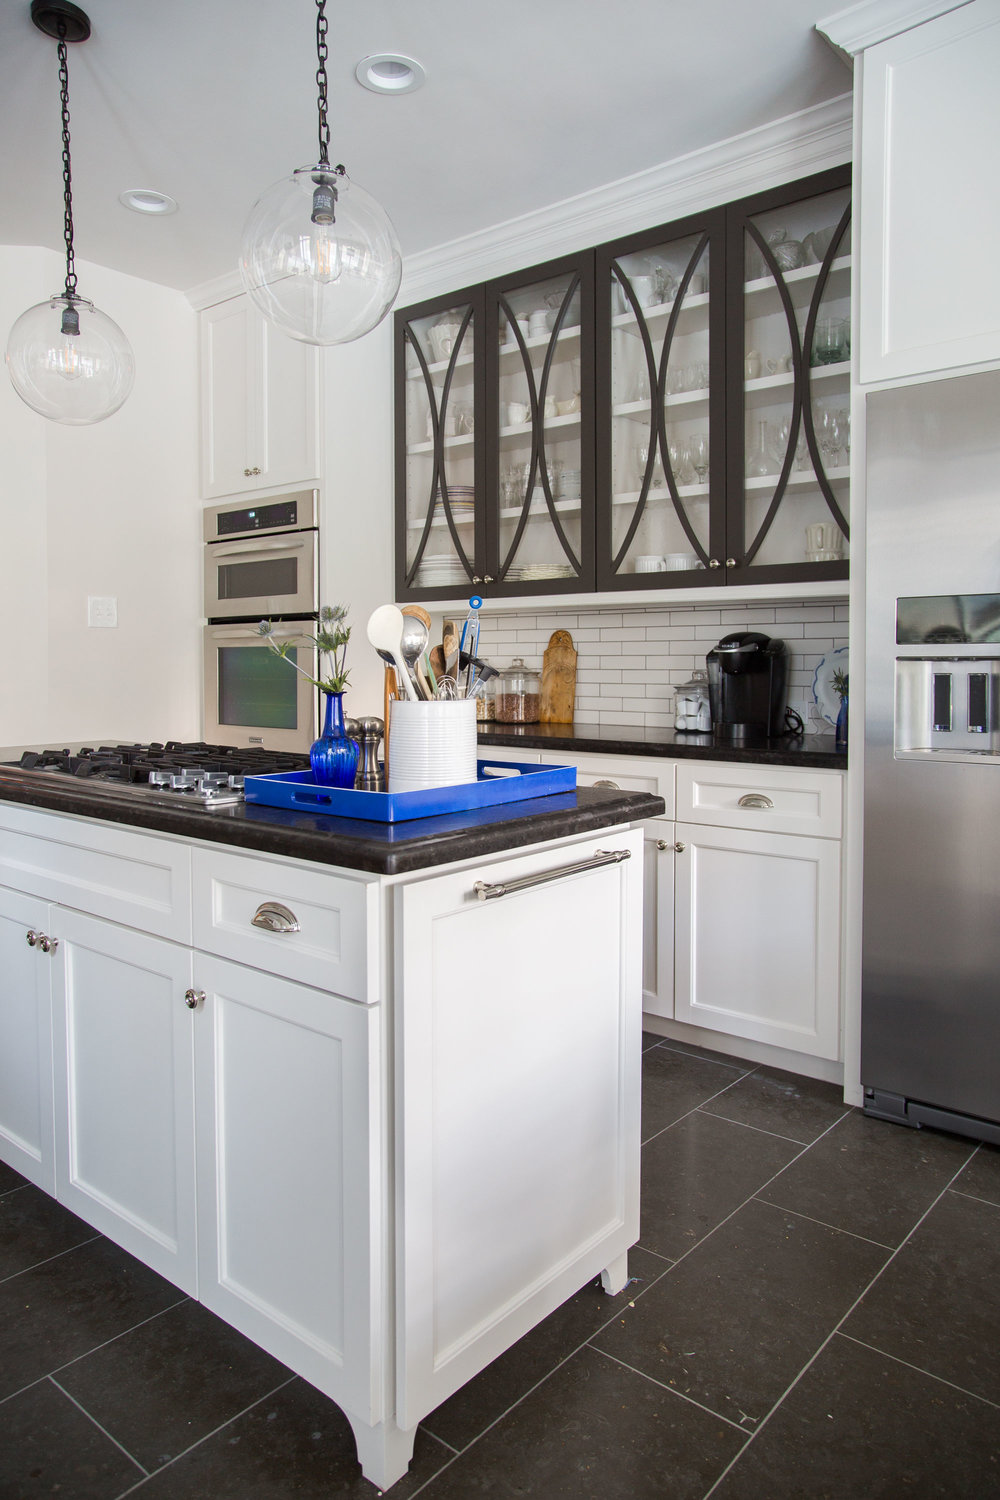 Before and After Kitchen Remodel, Carla Aston - Designer, Tori Aston Photographer